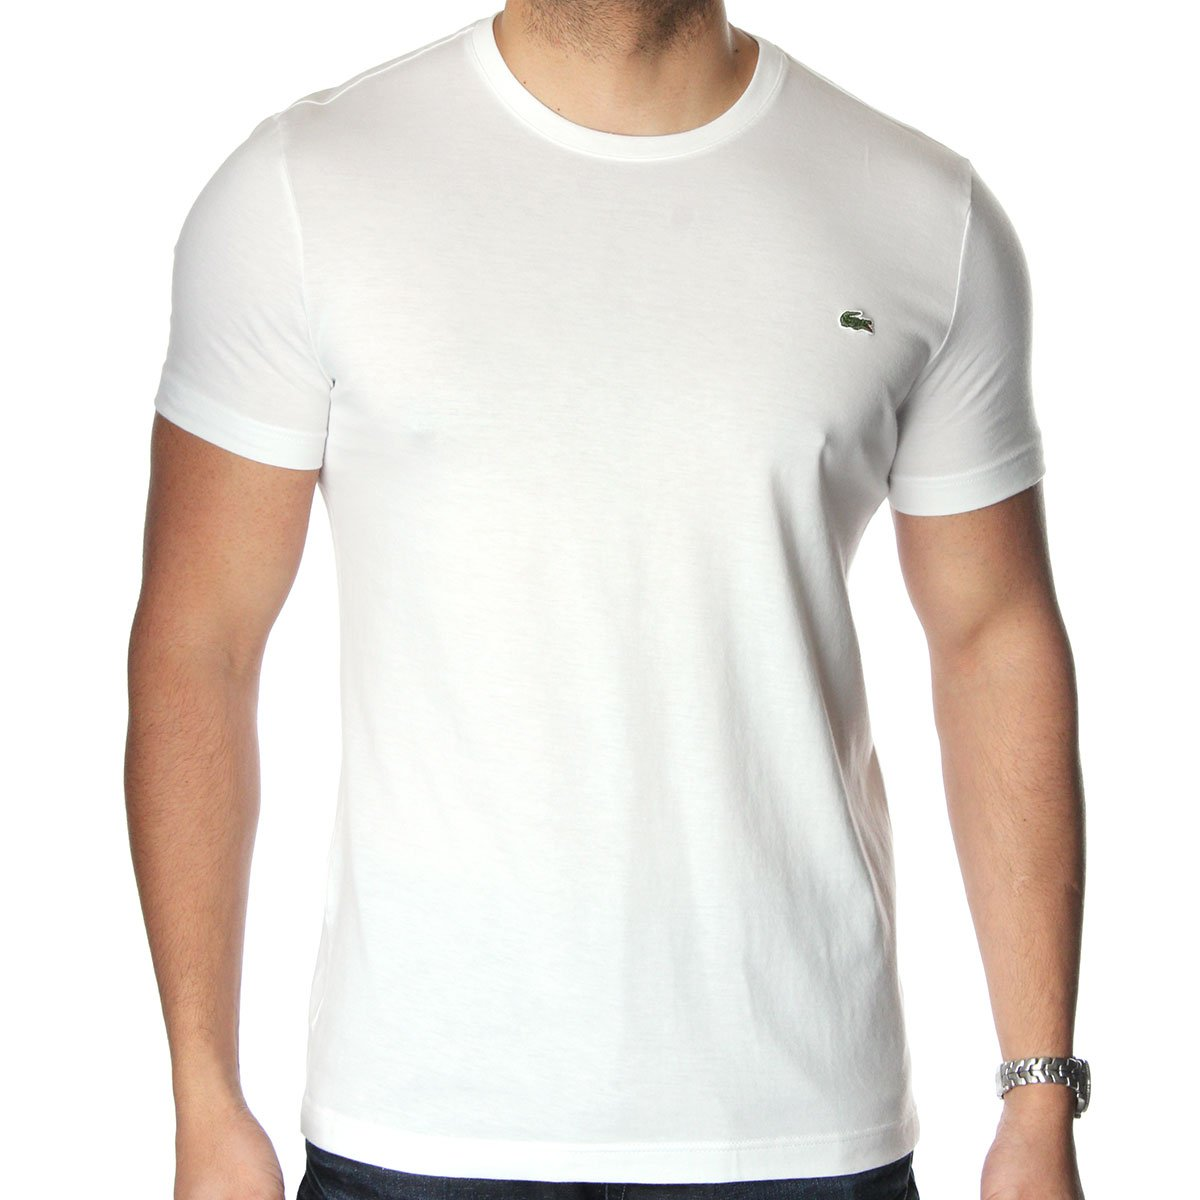 lacoste th2038 t shirt lacoste from the menswear site uk. Black Bedroom Furniture Sets. Home Design Ideas